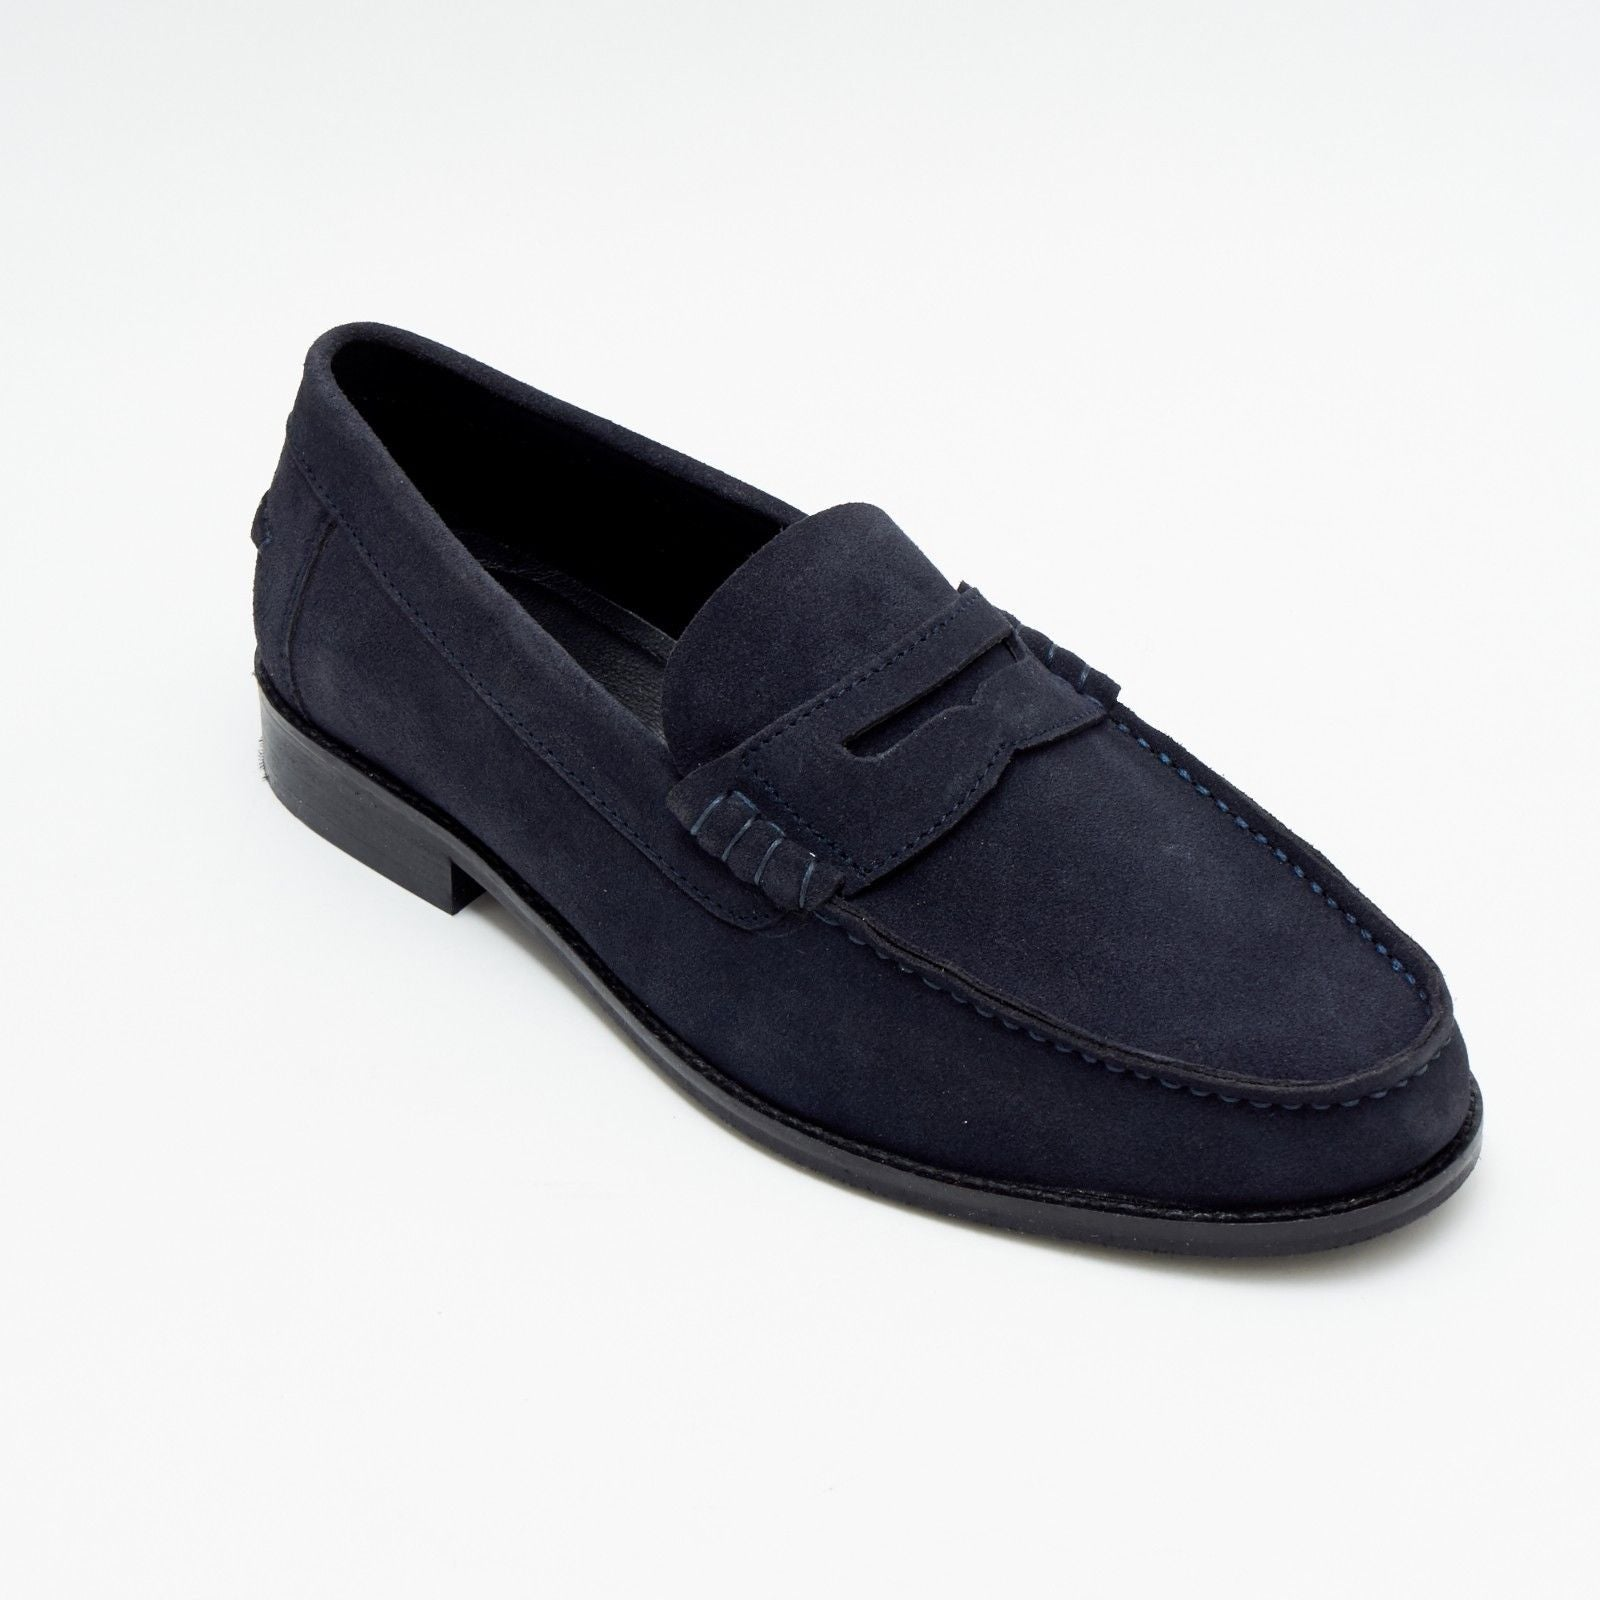 Mens Suede Casual Slip On Shoes - 17925_Navyblue Suede